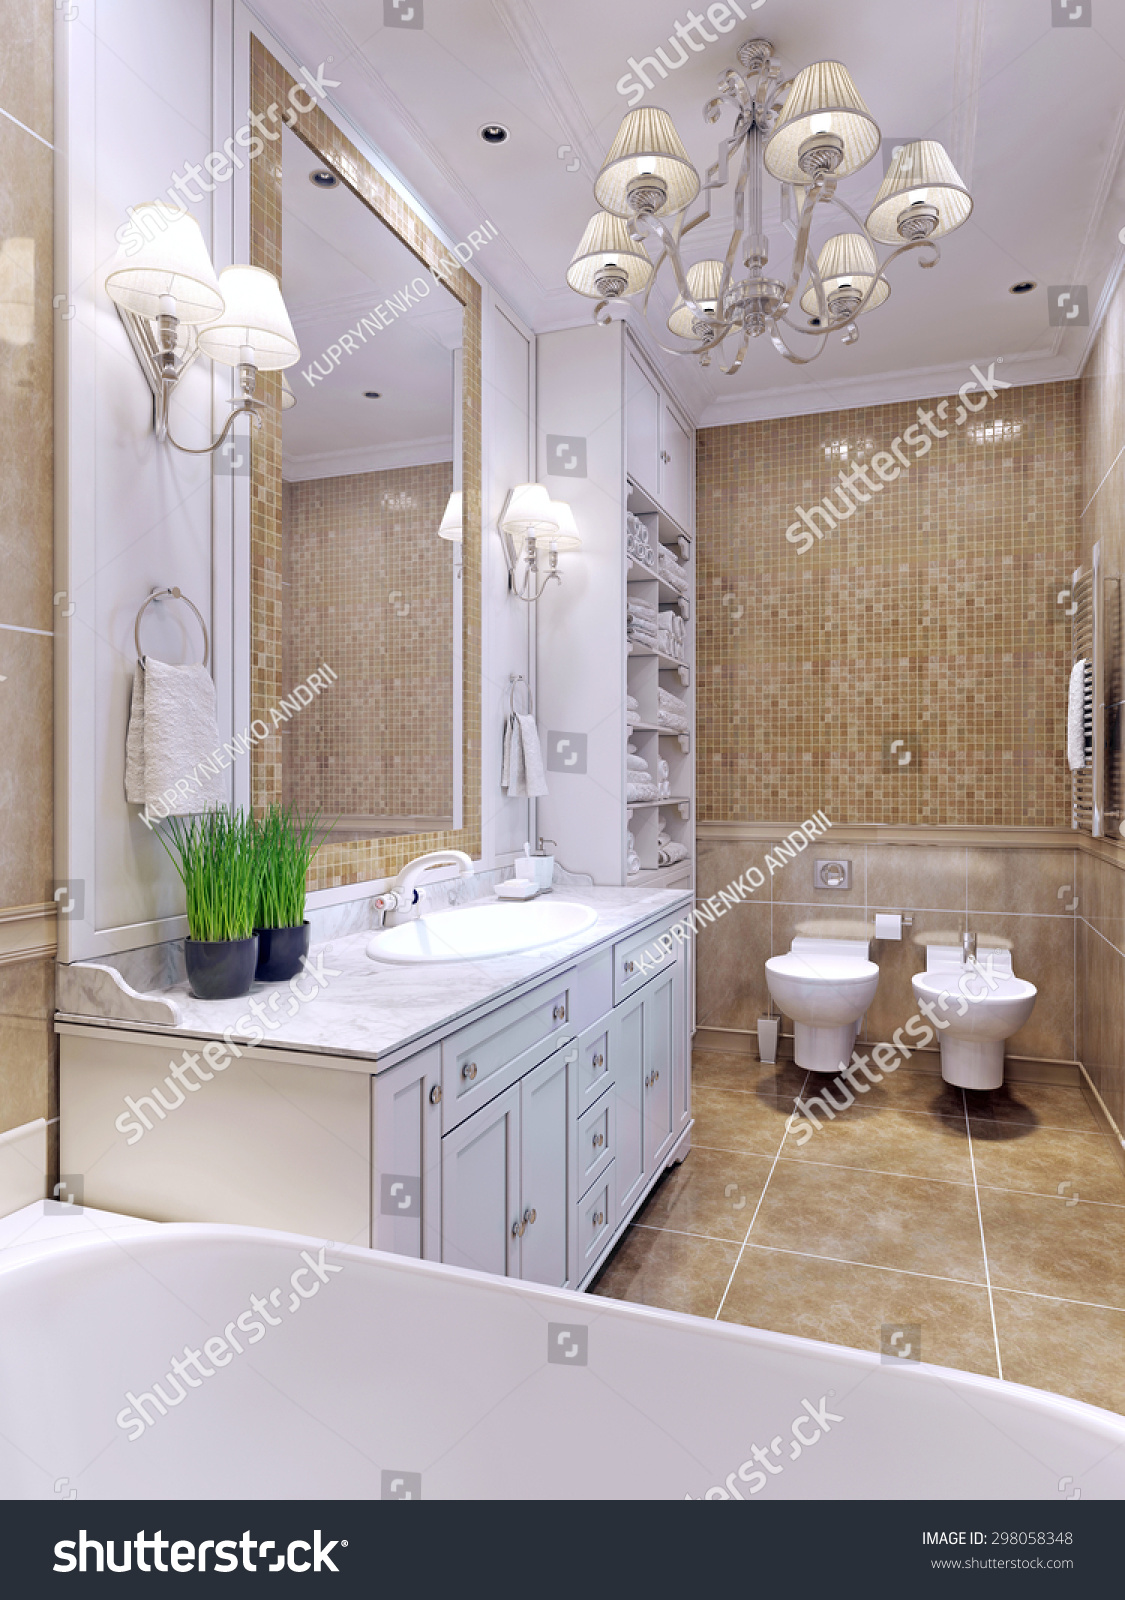 Bathroom charming bright best bathroom though white throughout this bathroom adds a charming - Amazing classic luxury bathroom inspirations tranquil retreat ...